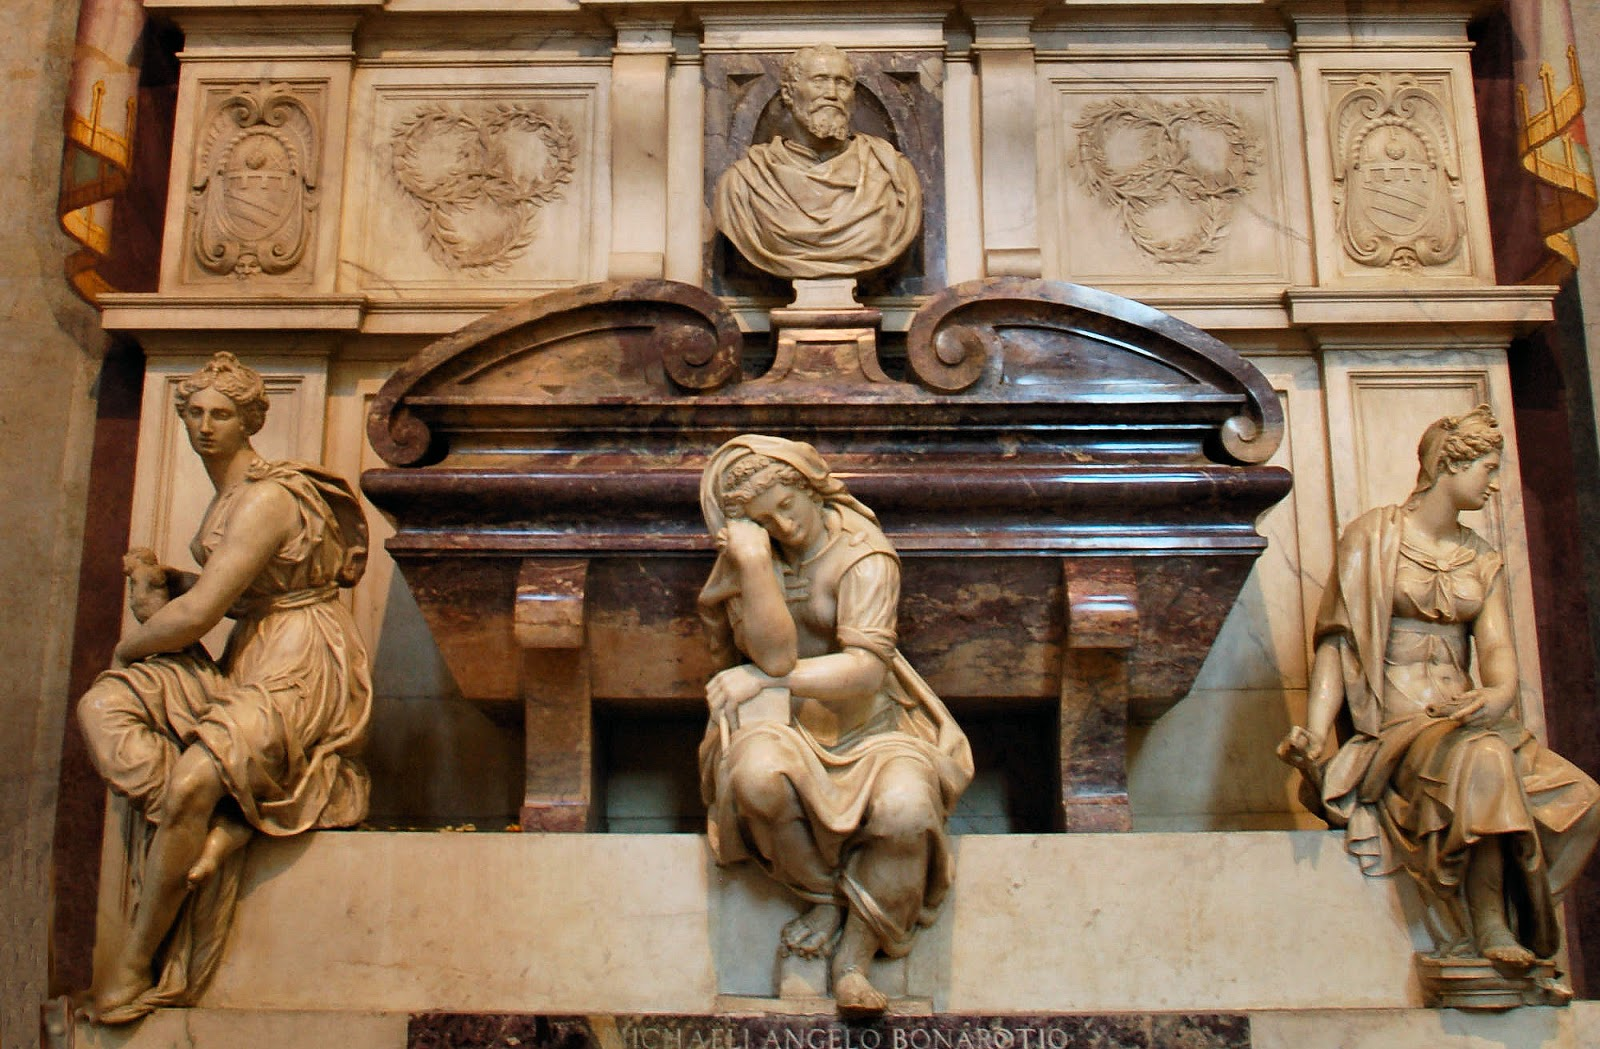 Close-up view of Michelangelo's tomb: Sculpture, Painting and Architecture personified appear below the creative genius at top. Photo: WikiMedia.org.